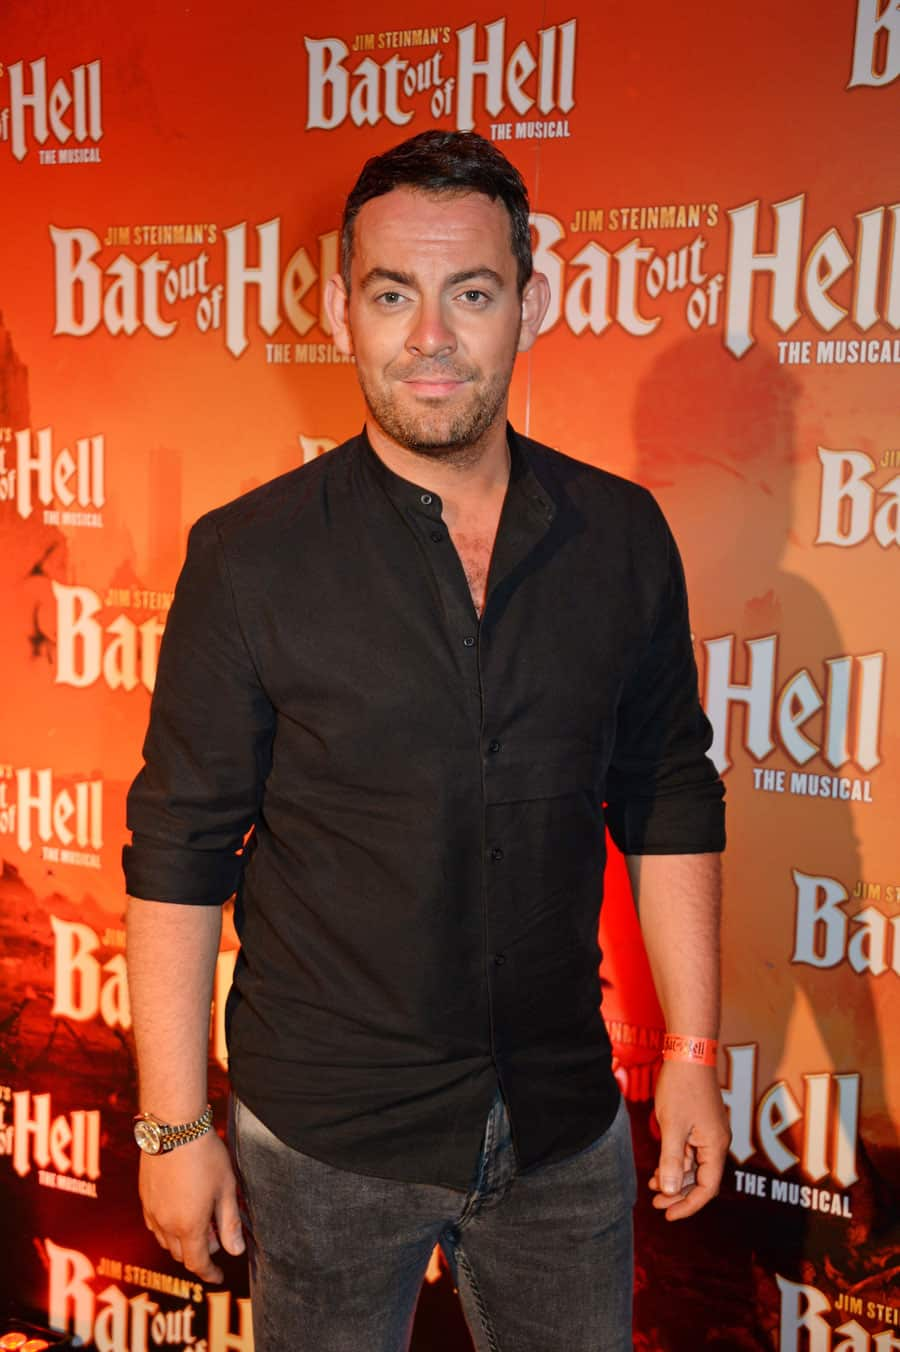 Opening Night of Bat Out Of Hell